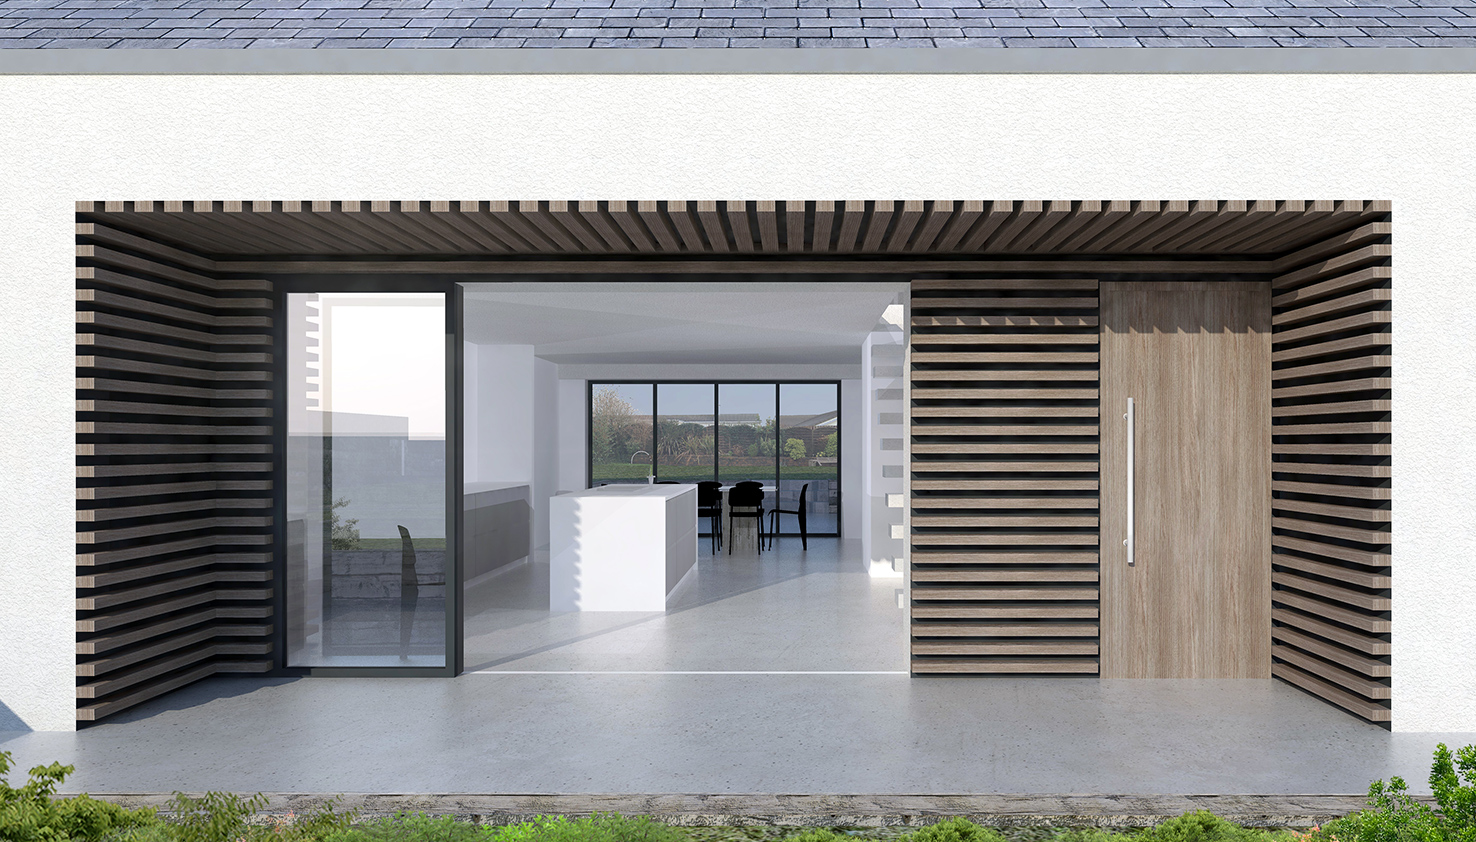 BETHUNE COTTAGE - A bespoke contemporary cottage for a client and their family.